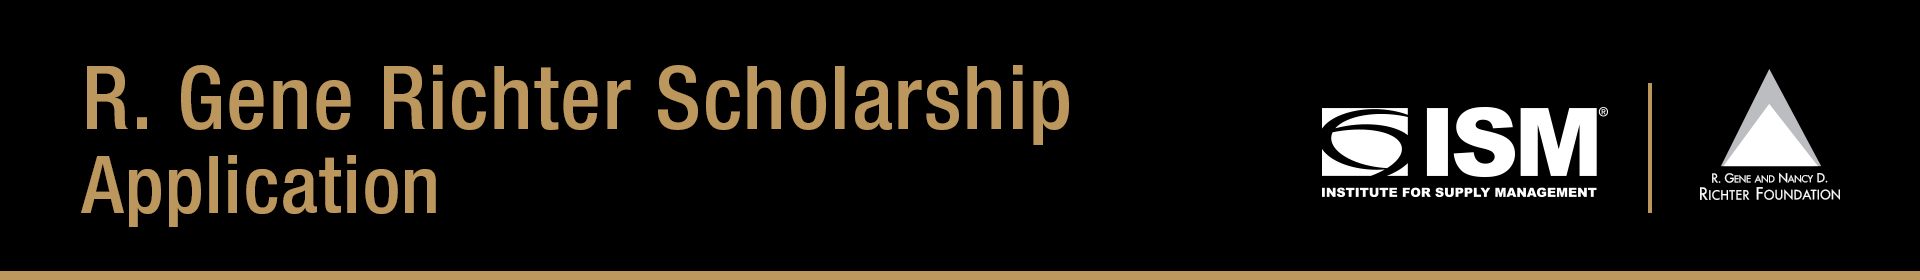 R. Gene Richter Scholarship Application